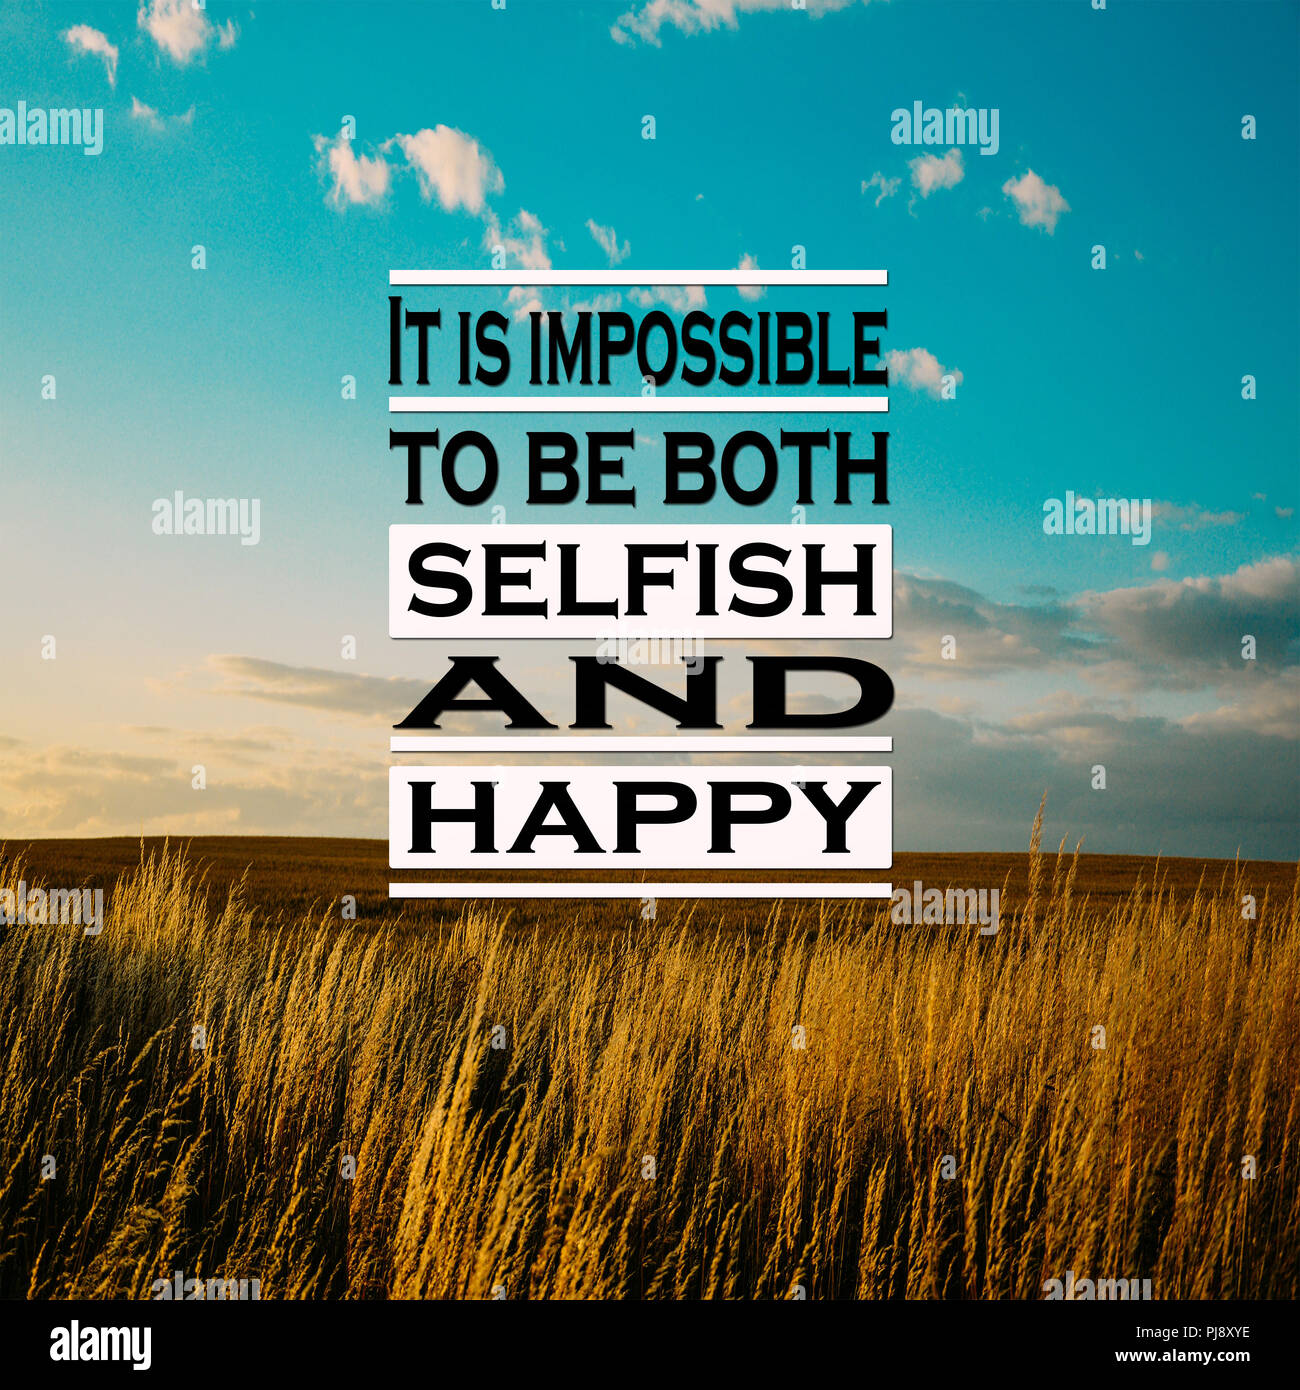 Happy Days Quotes Inspirational: Inspirational Quotes: It Is Impossible To Be Both Selfish